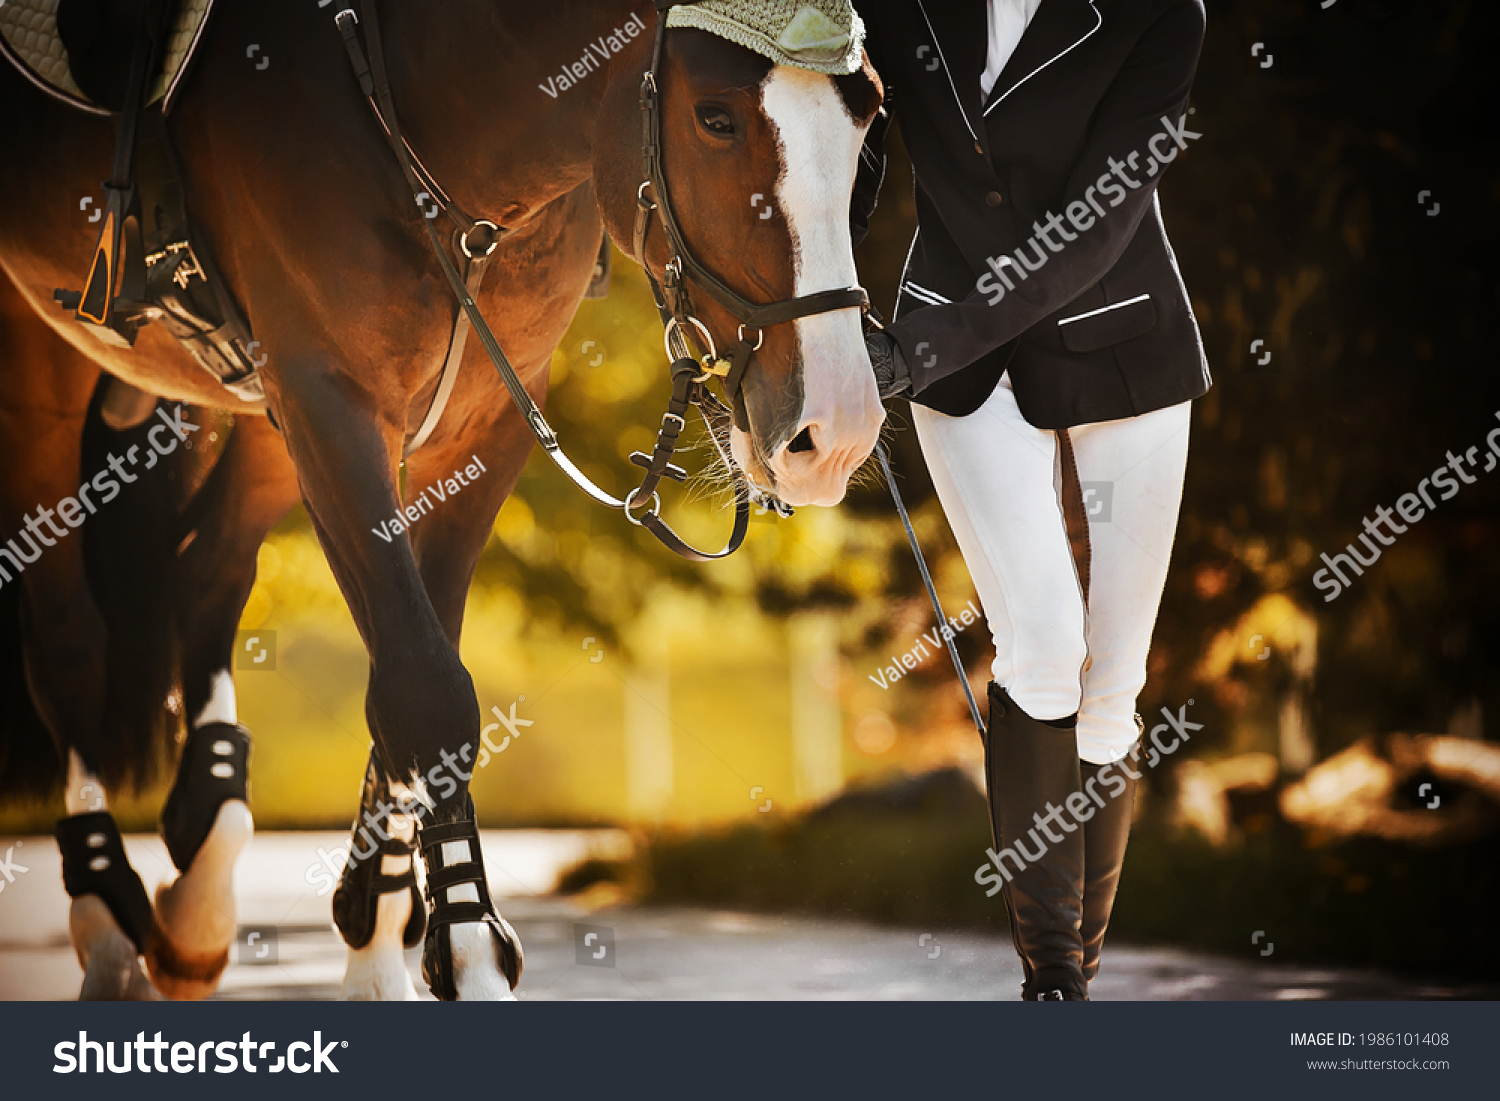 The rider leads her beautiful bay horse by the bridle rein along the road among the leaves of trees on a sunny, warm autumn day. Equestrian sports. Equestrian life. #1986101408